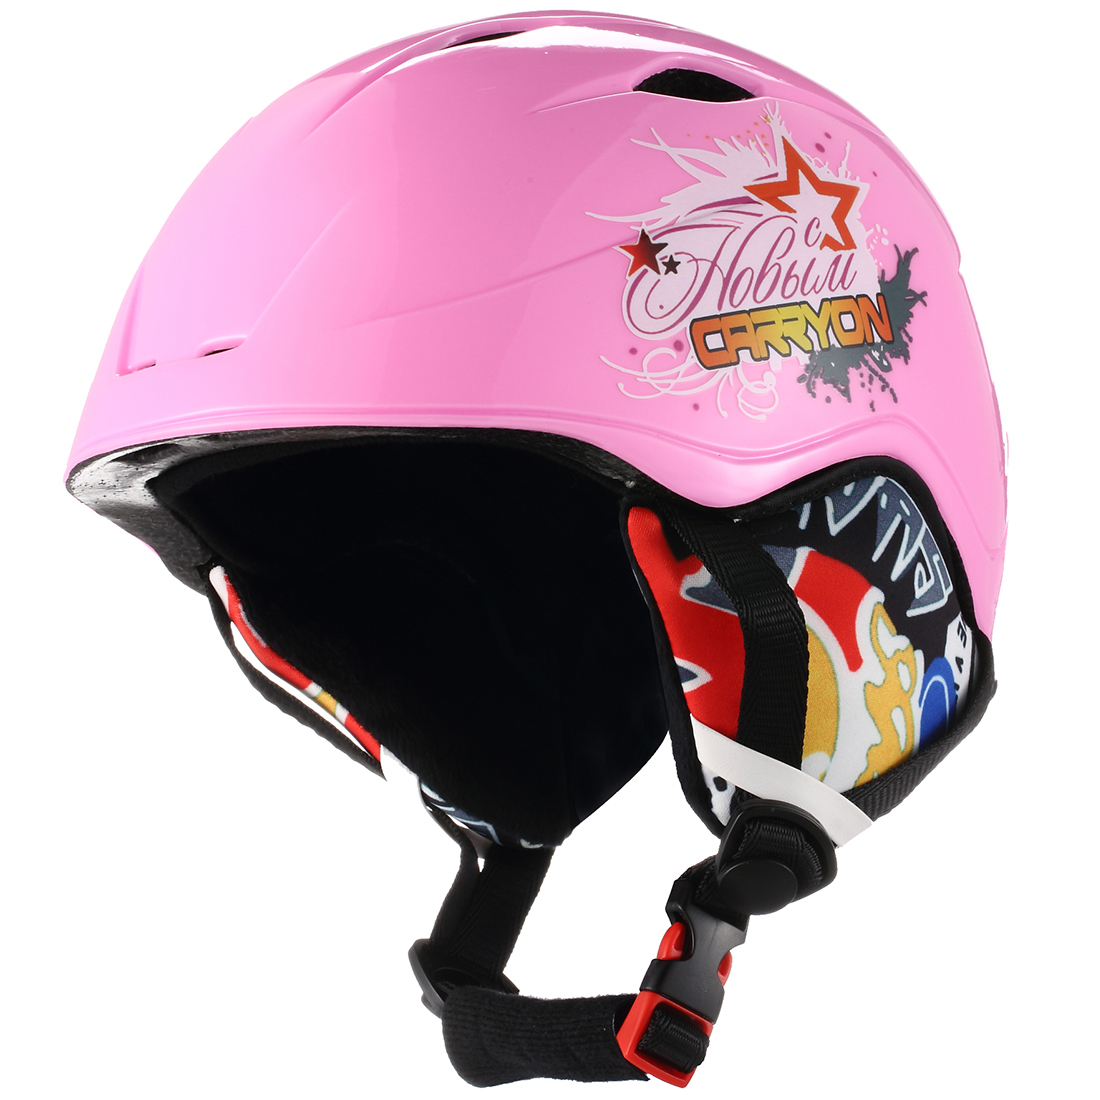 Sporting Plastic Kids Warm Snowboard Ski Helmet Winter Head Protective Gear Pink